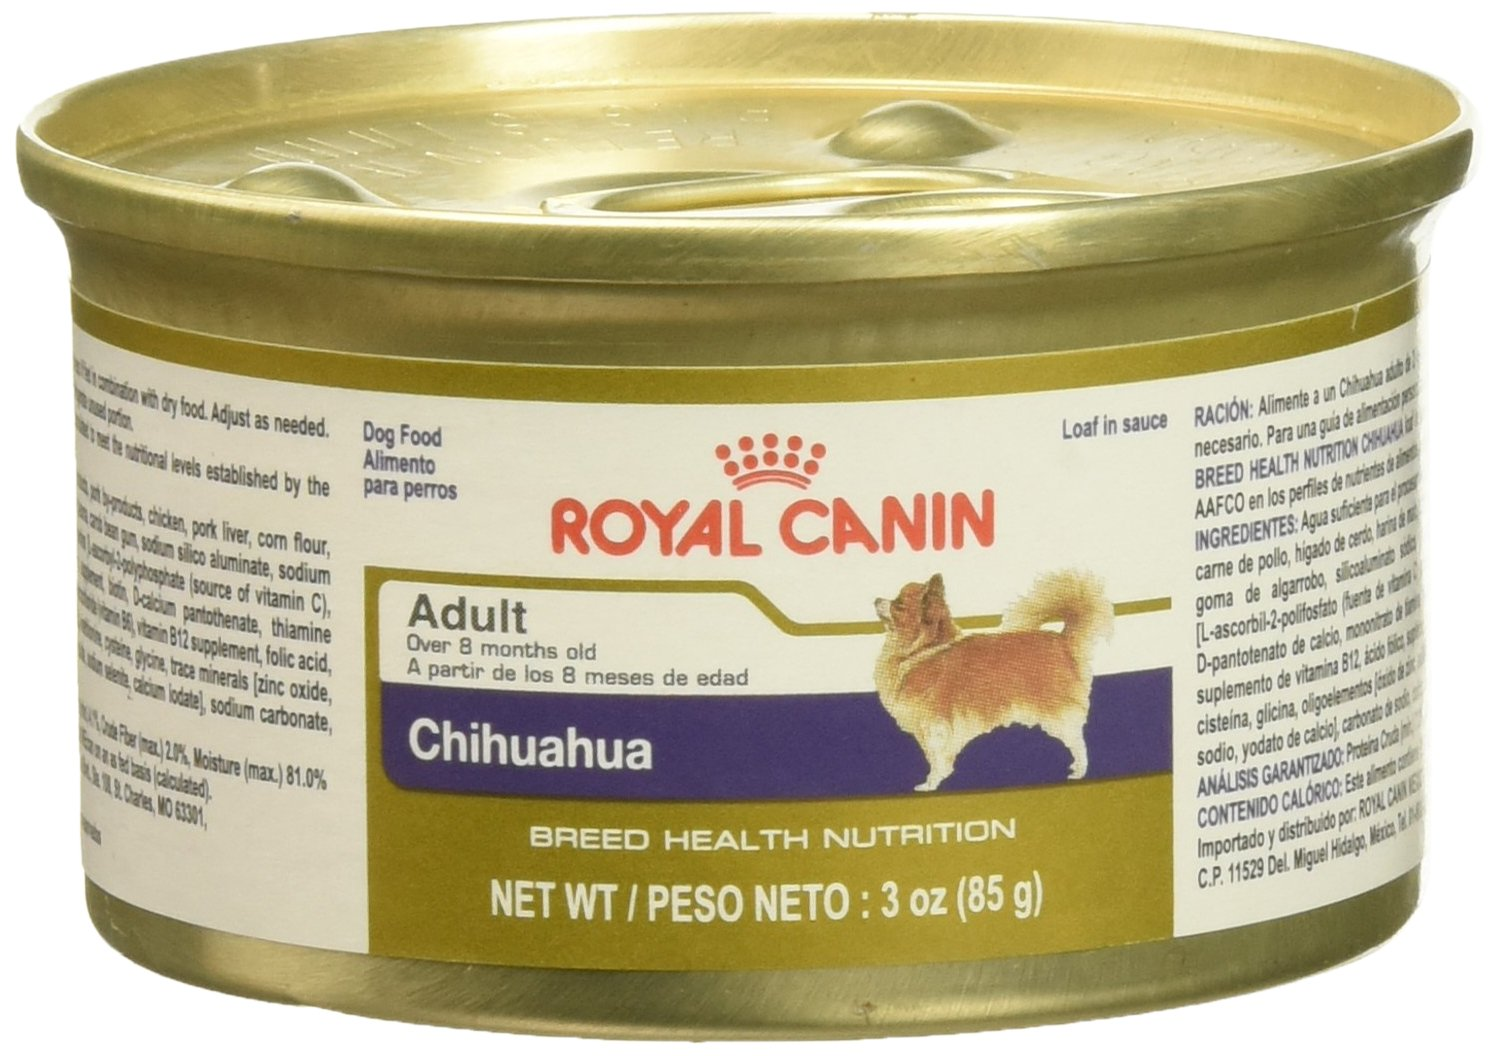 Royal Canin Breed Health Nutrition Chihuahua Loaf in Sauce Dog Food (Pack of 4/1), 3 oz